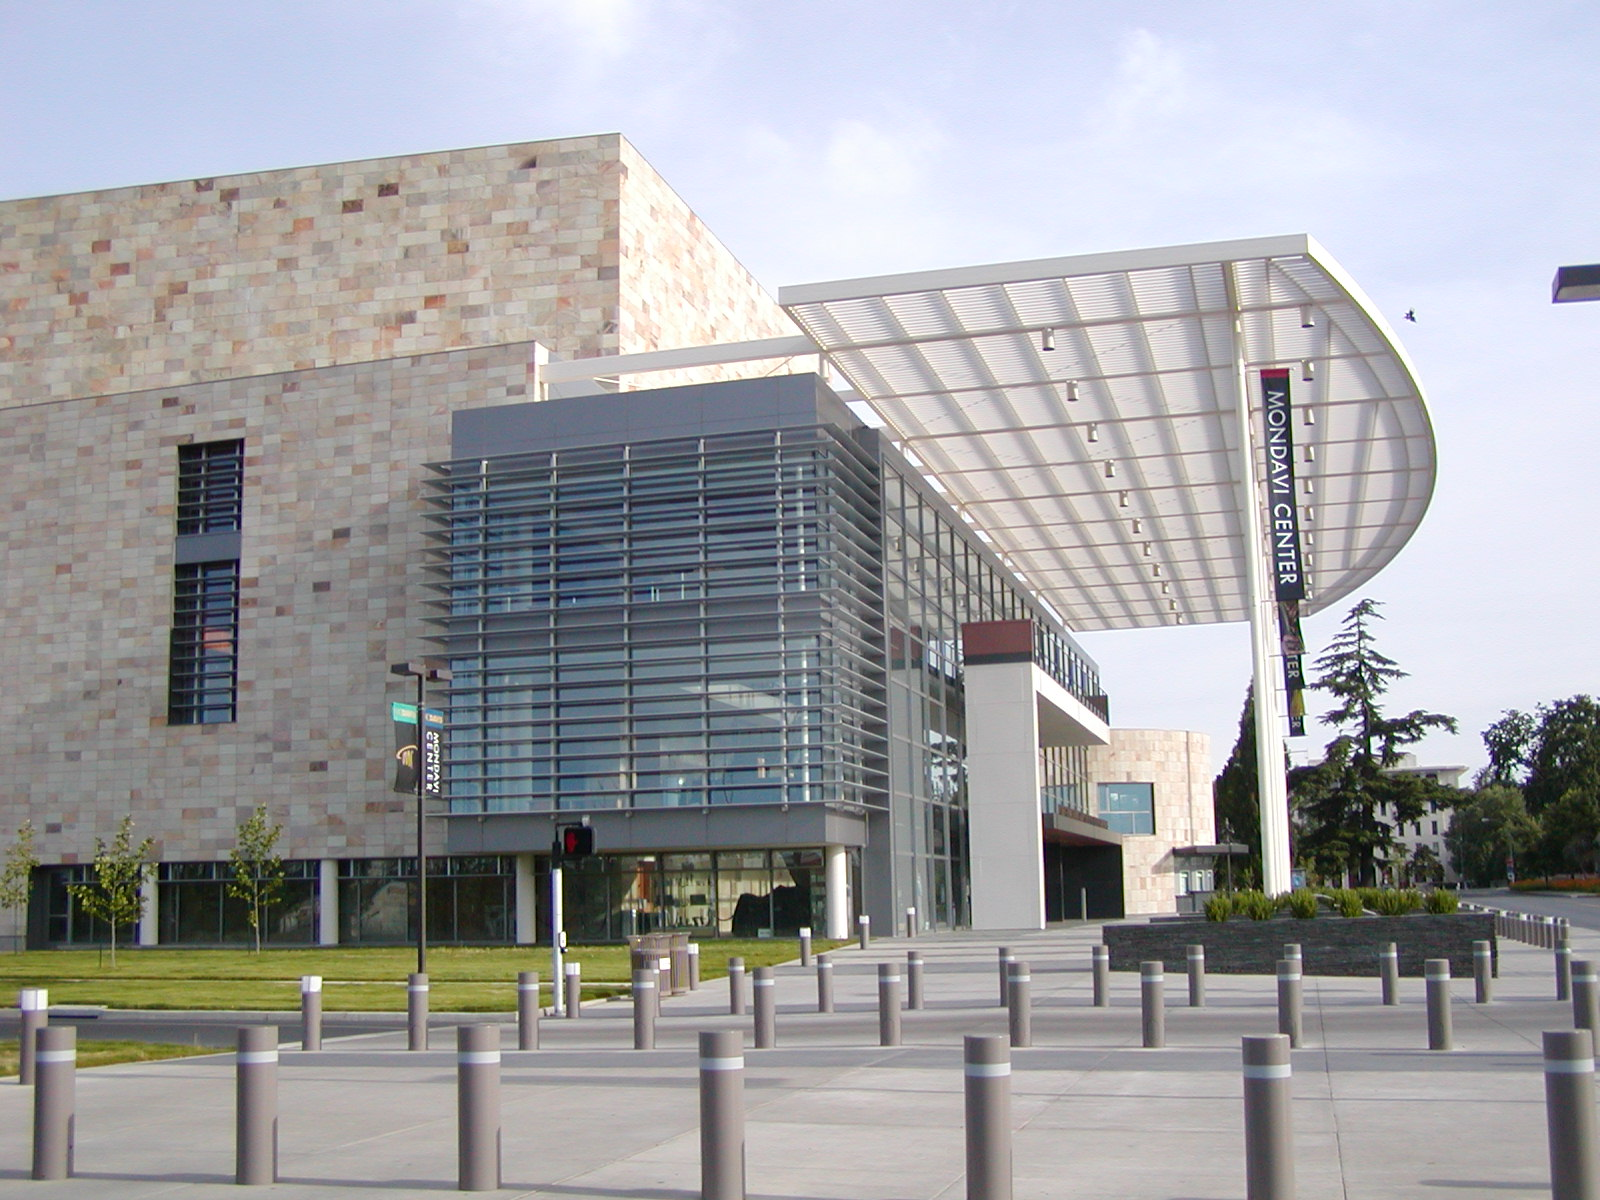 File:UC DAVIS Mondavi Center.jpg - Wikipedia, the free encyclopedia